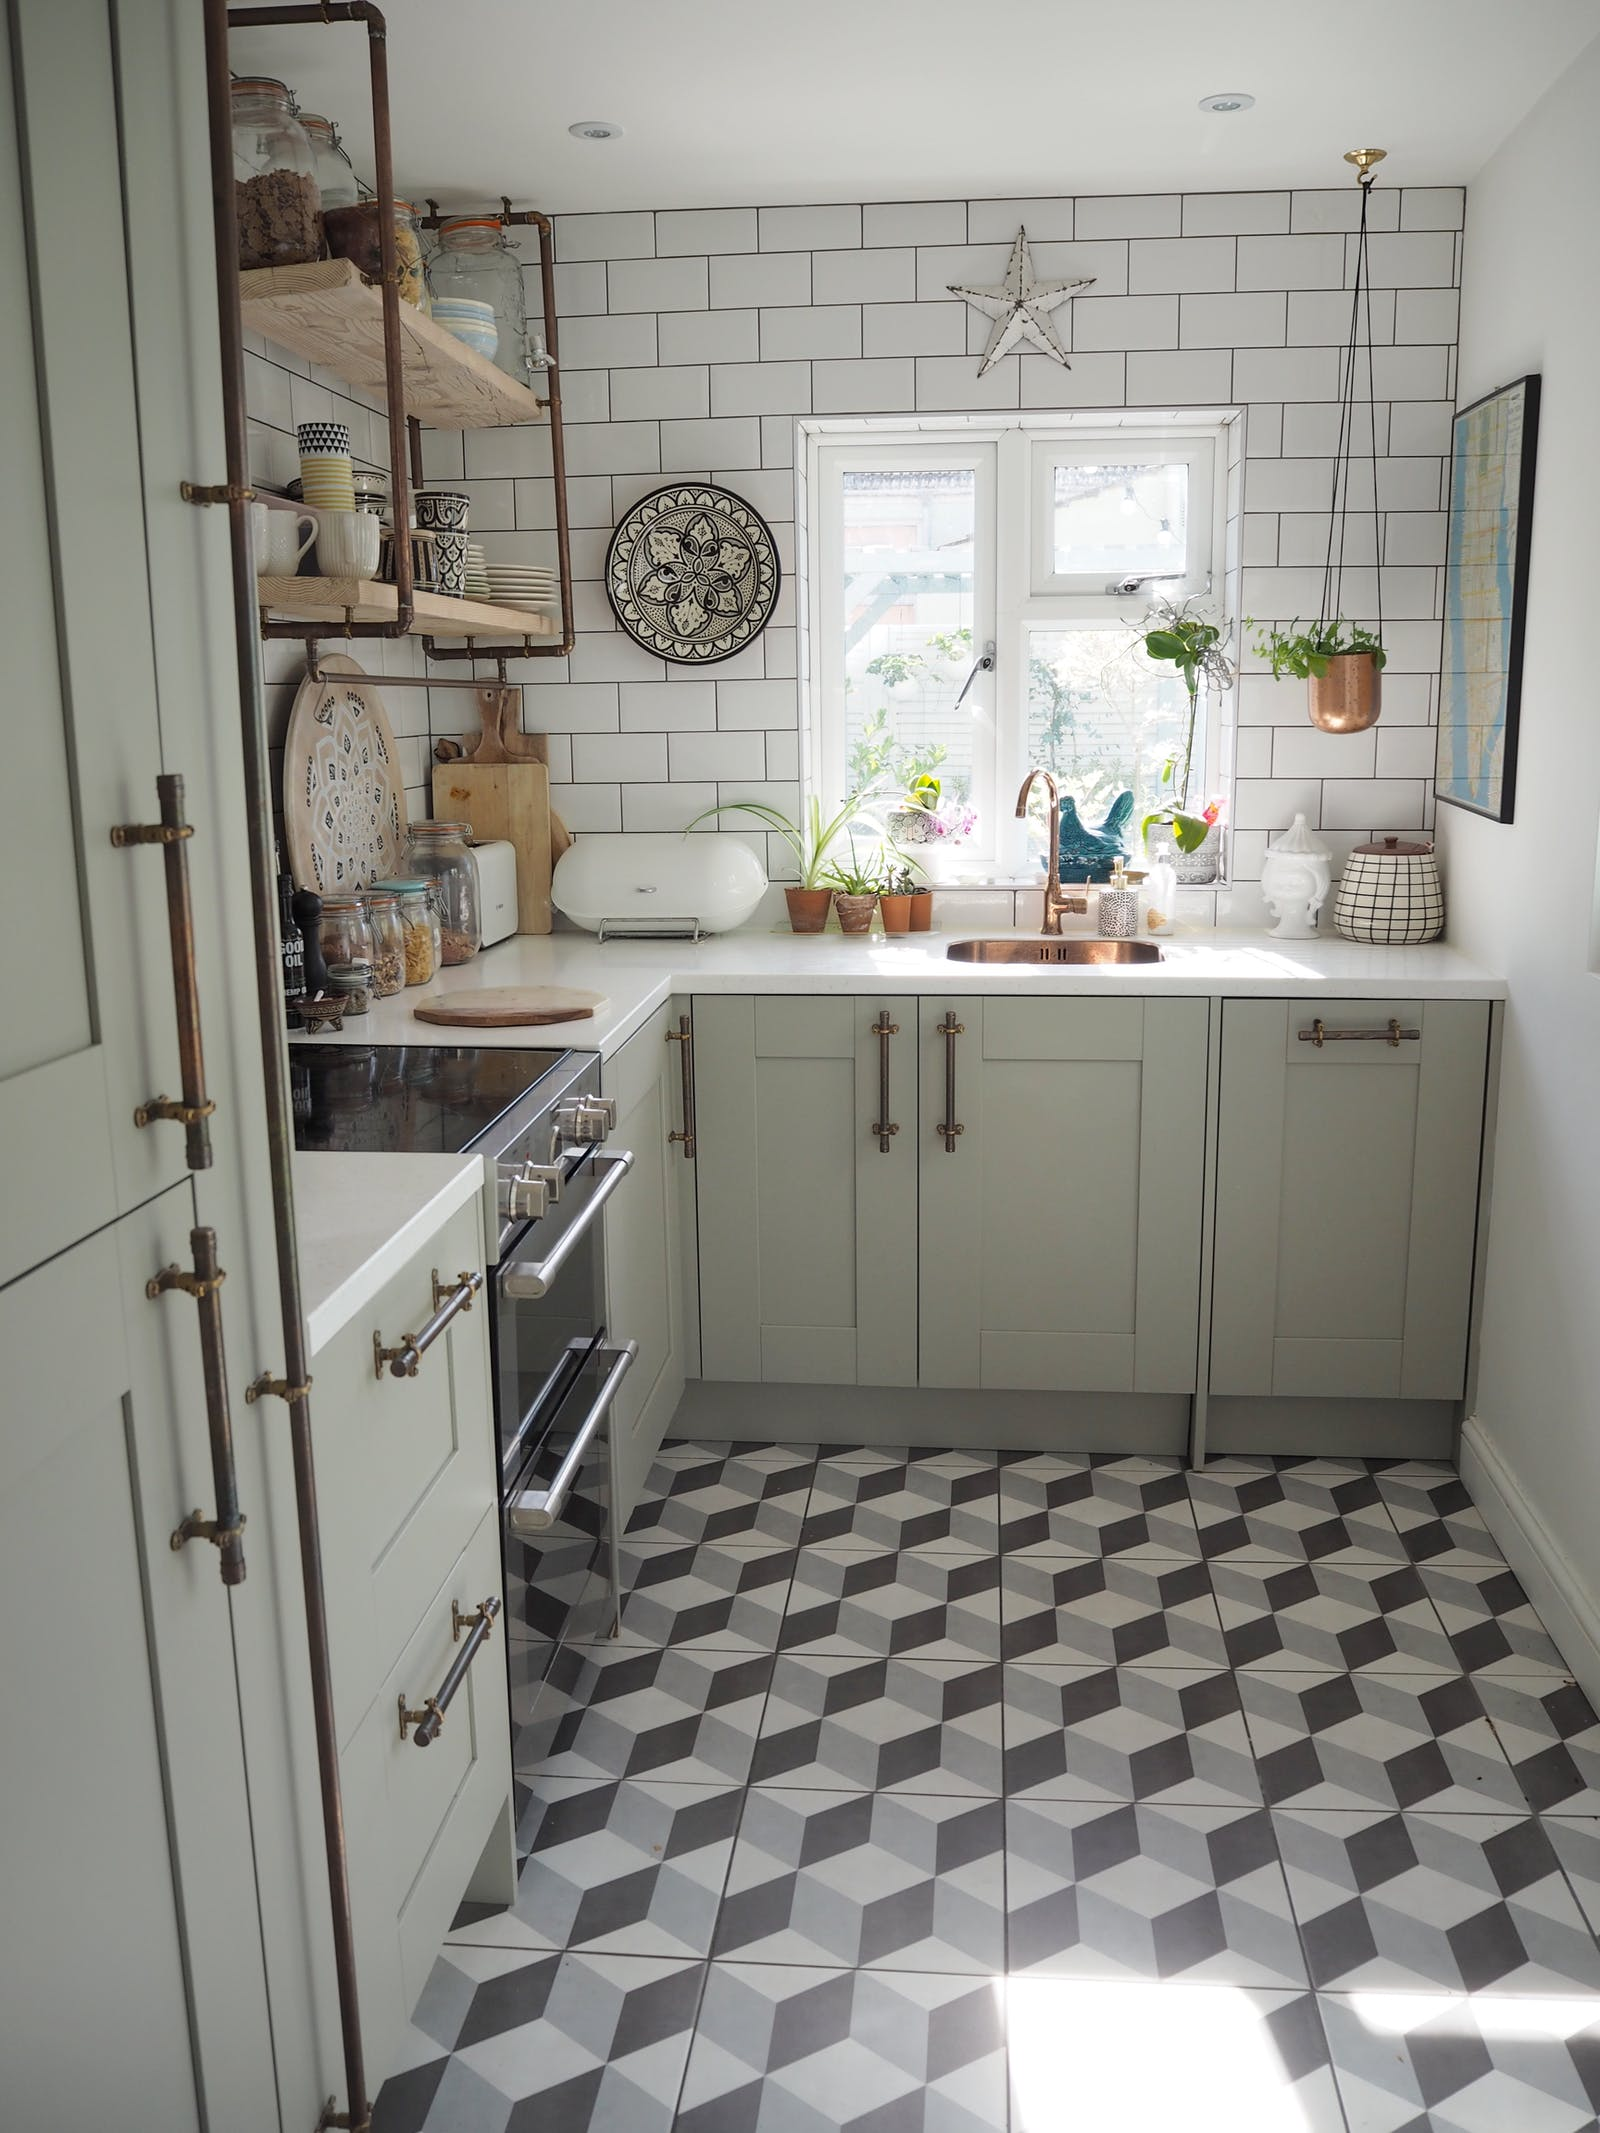 Neutral kitchen with patterned tiles on the floor and metro tiles on the wall